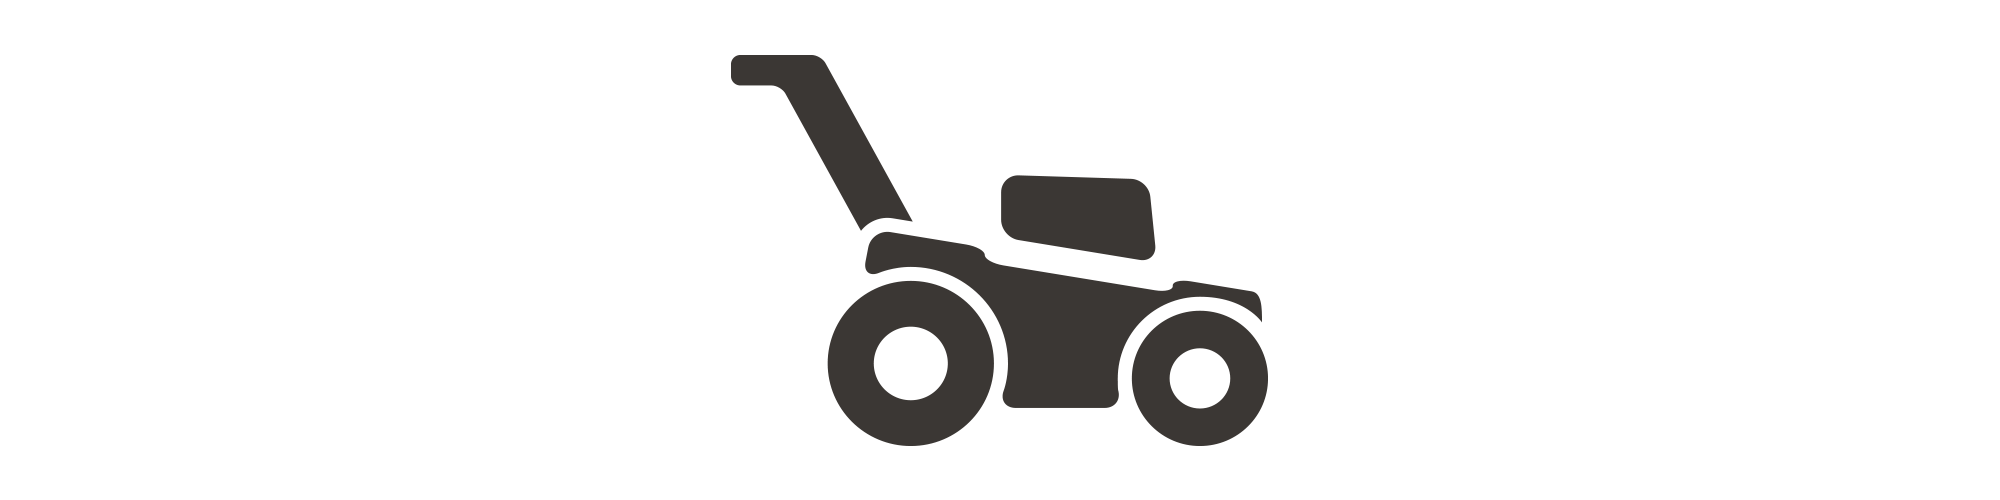 lawnmower-icon.png